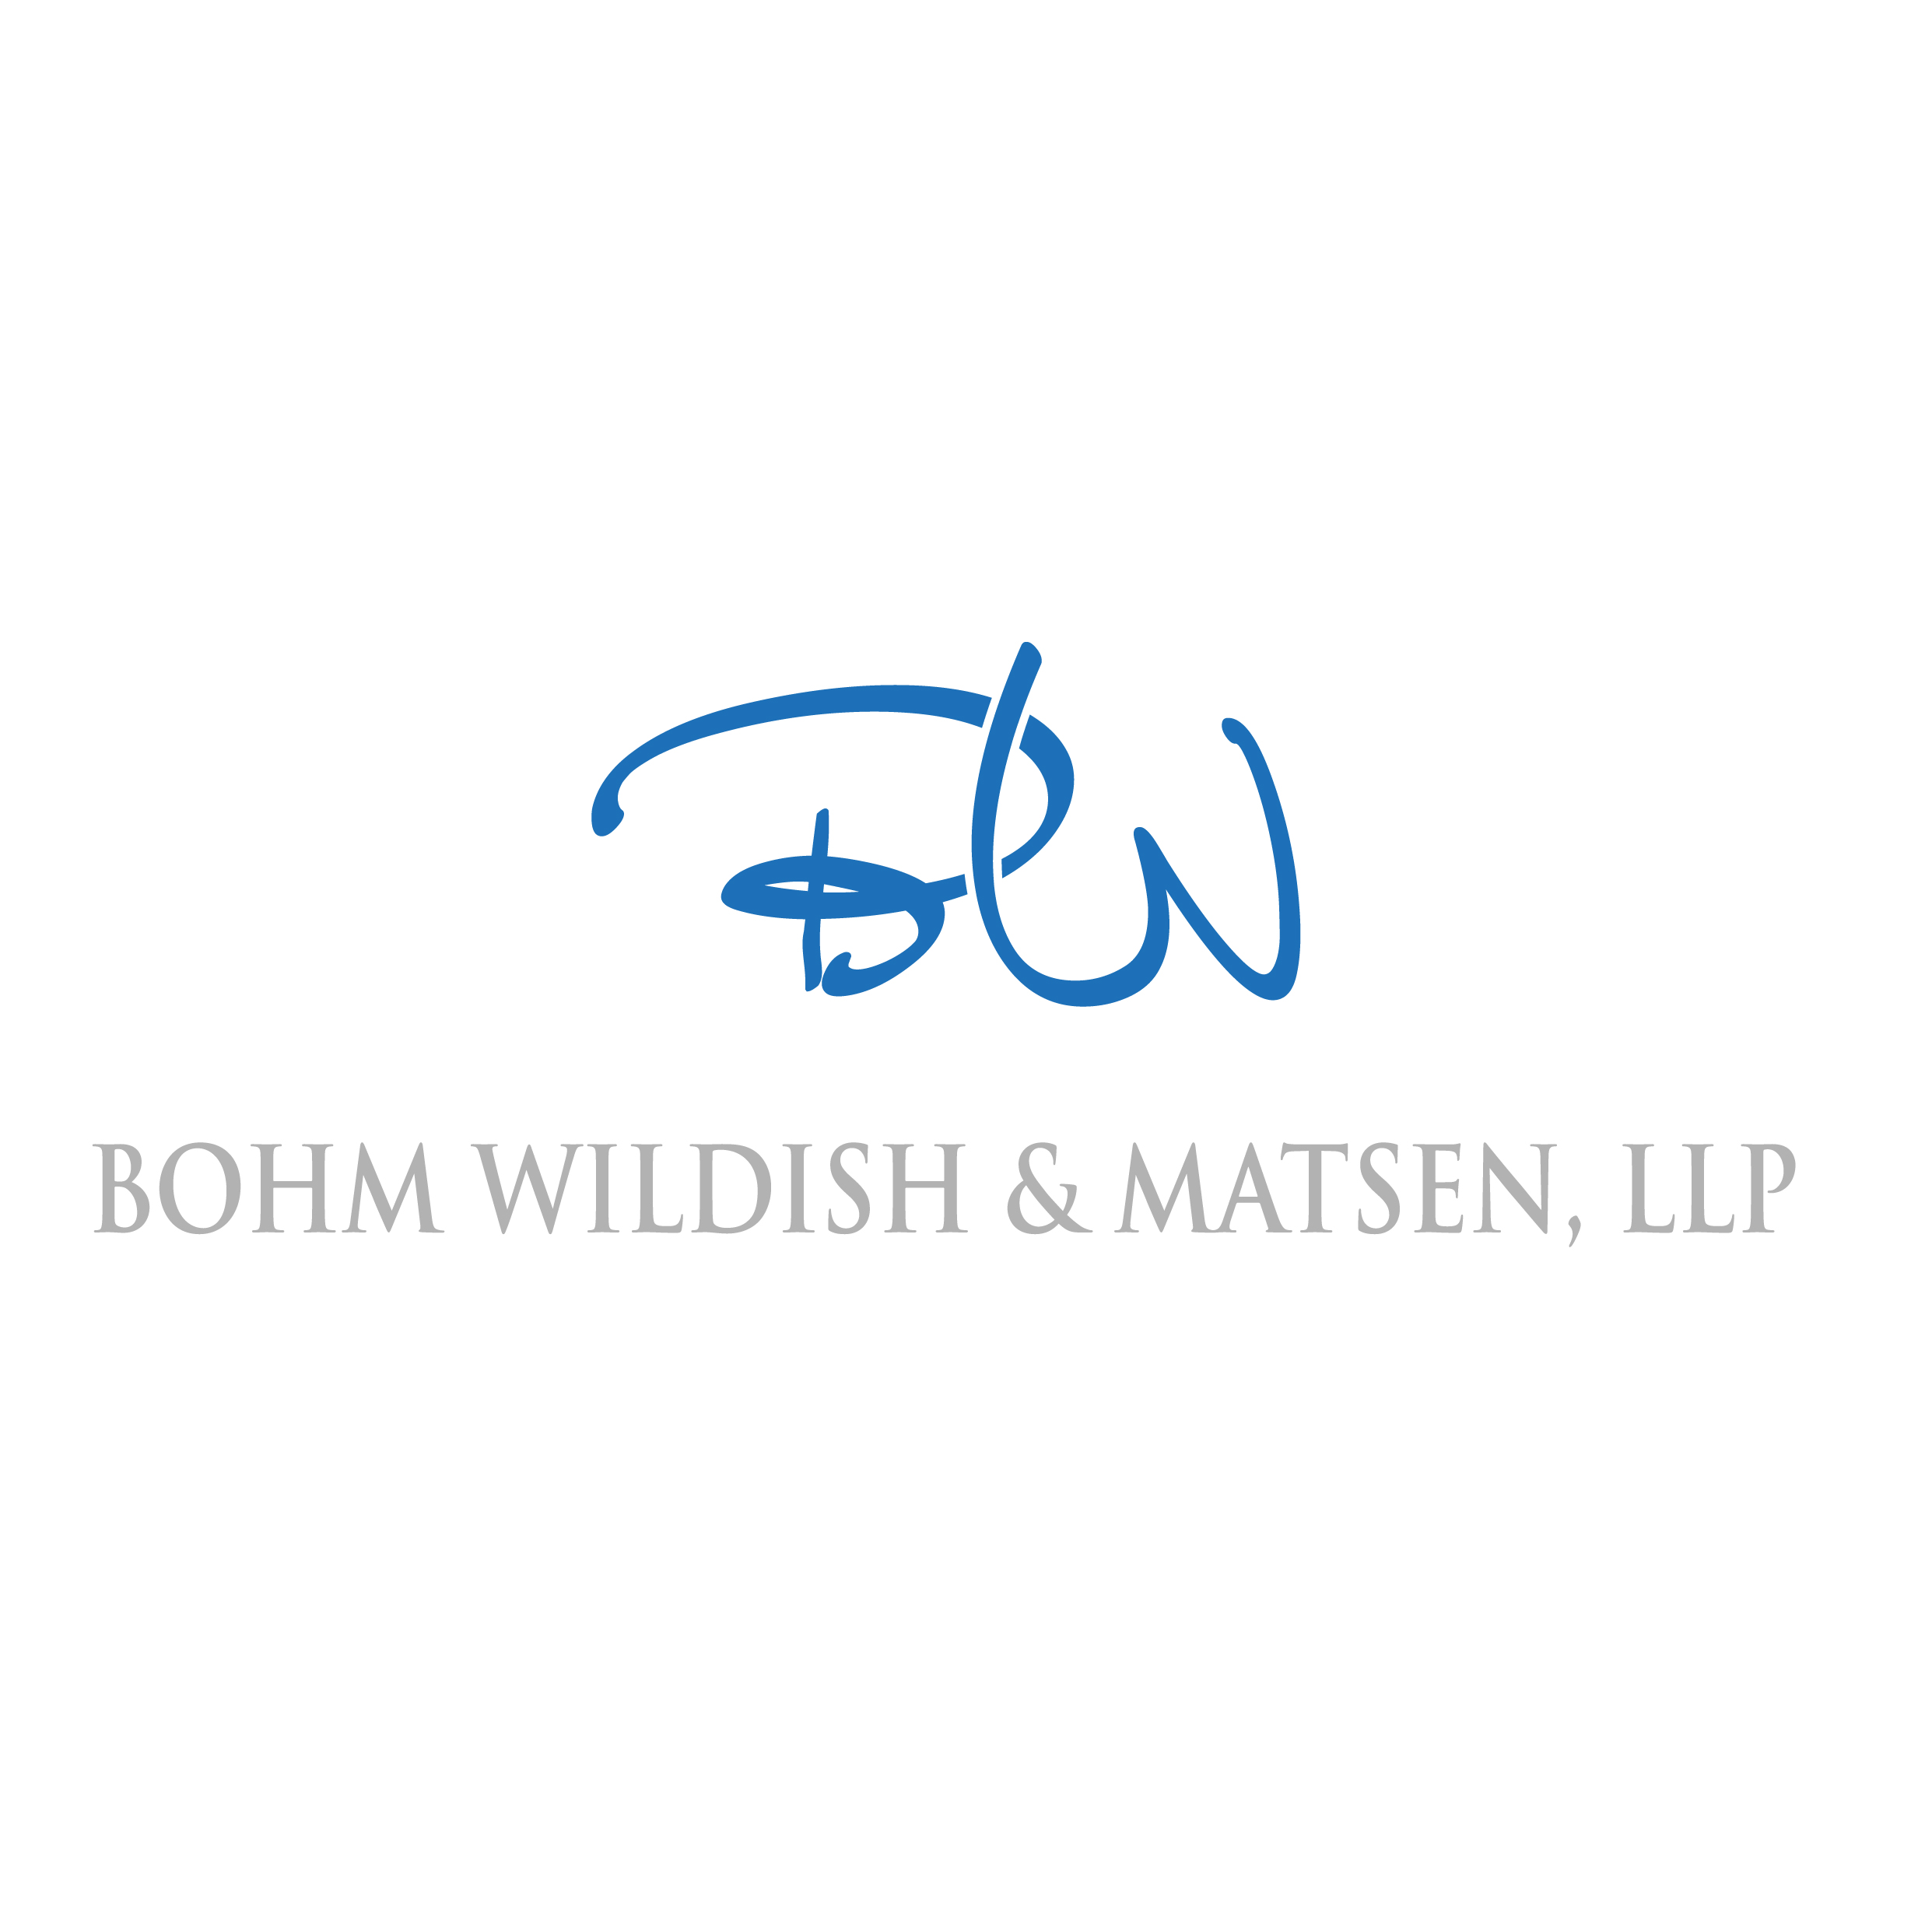 Bohm Wildish & Matsen, LLP